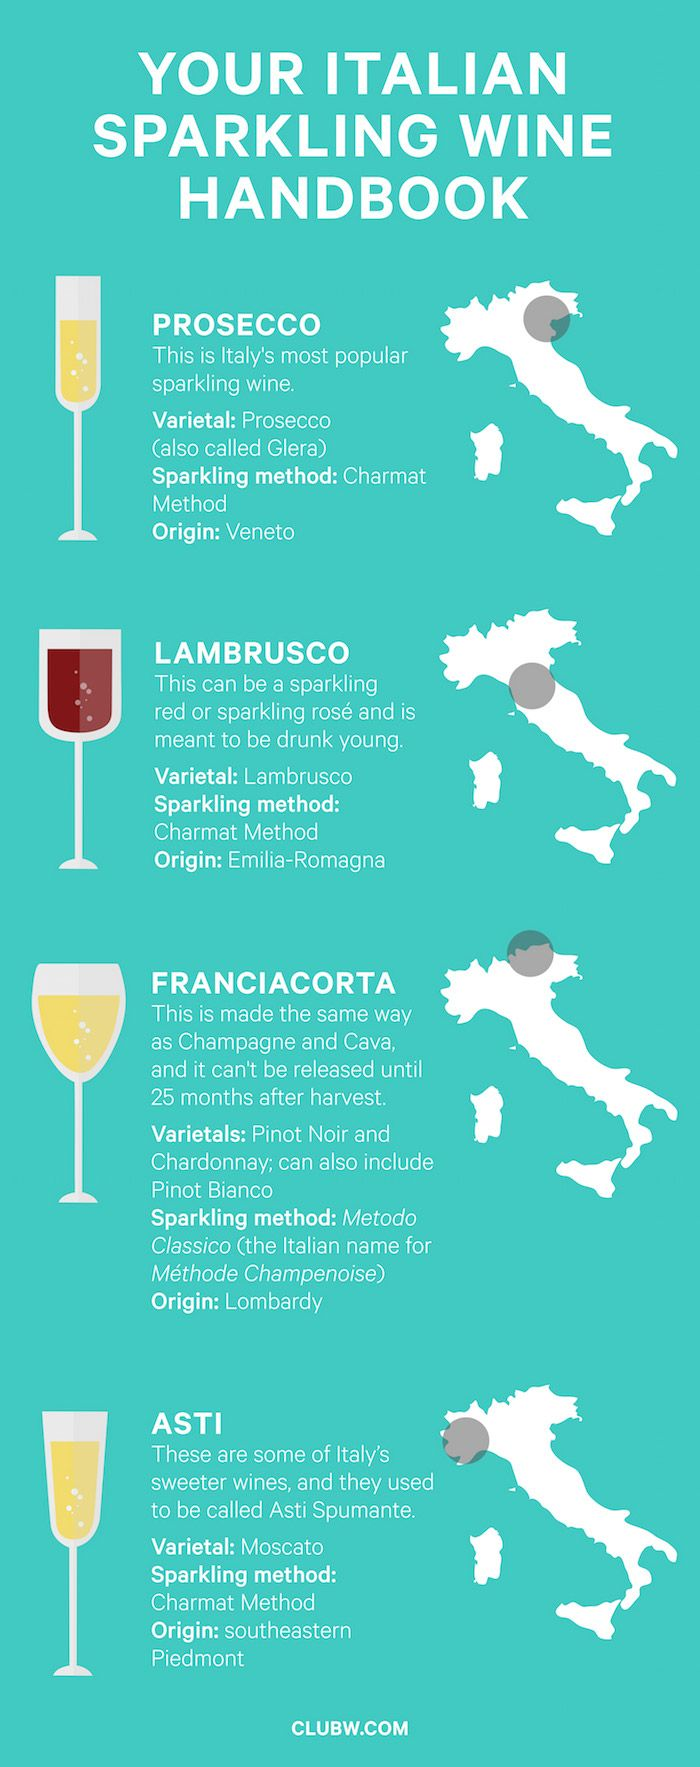 Frizzante? Spumante? // Your Italian Sparkling Wine Handbook - The Juice | Club W